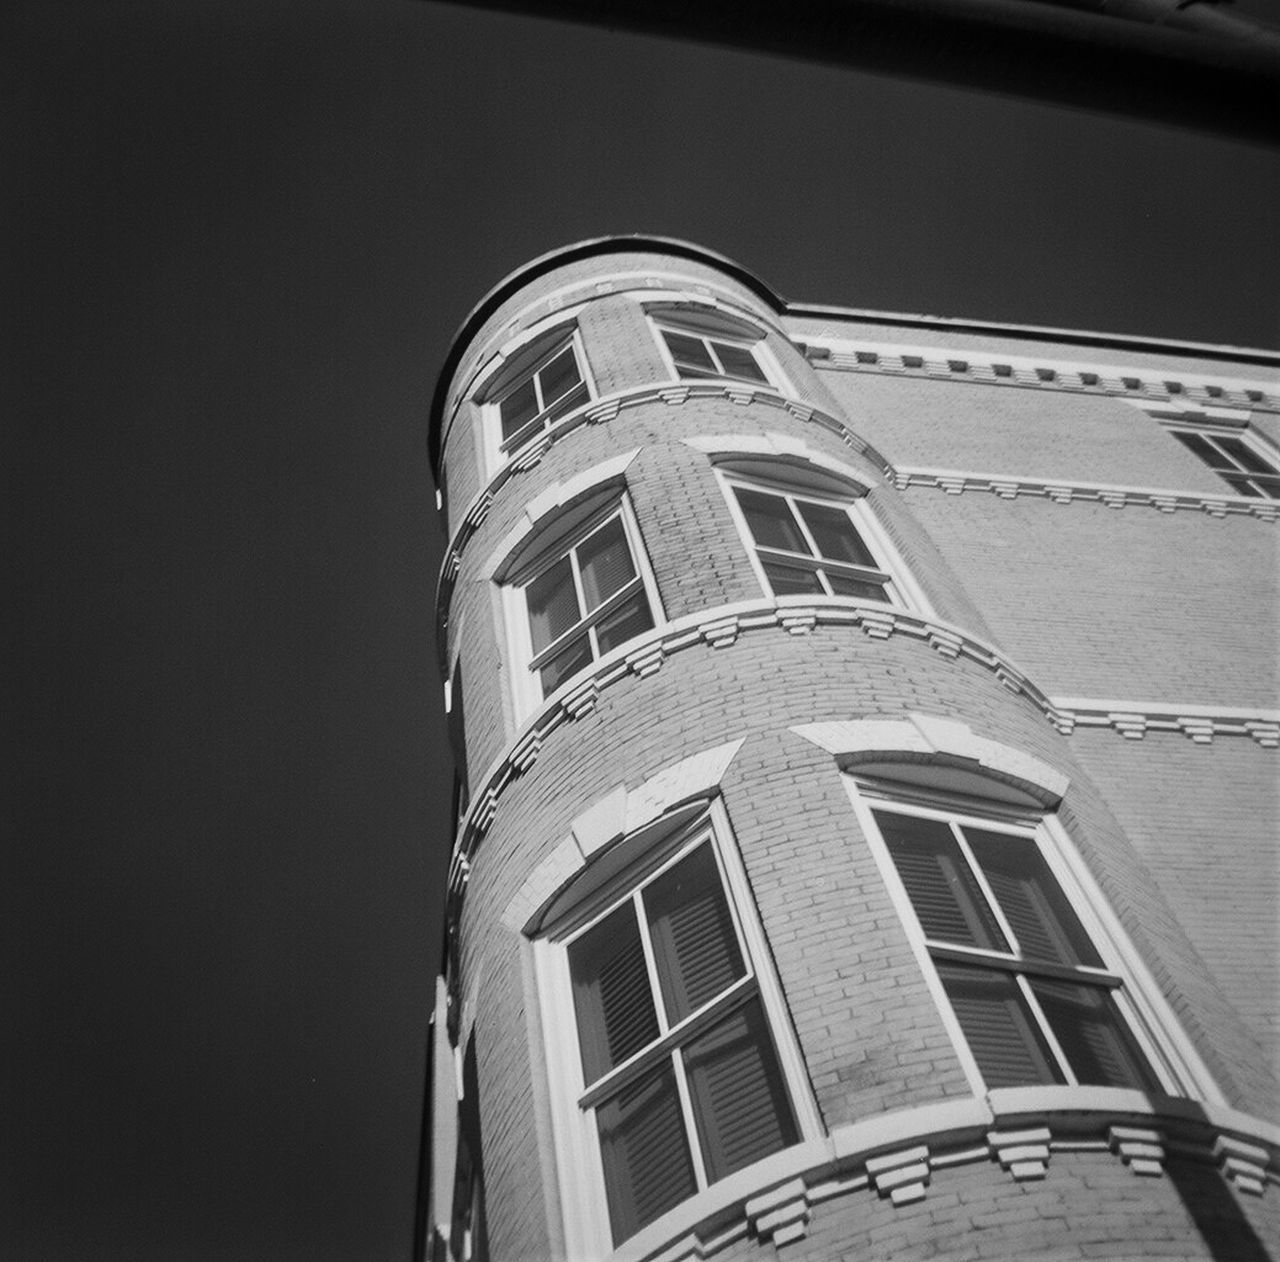 Architecture Blackandwhite Photography Building Exterior Built Structure Clear Sky Clock Day EyeEm Gallery Kodakbrownie Low Angle View No People Outdoors Sky Window